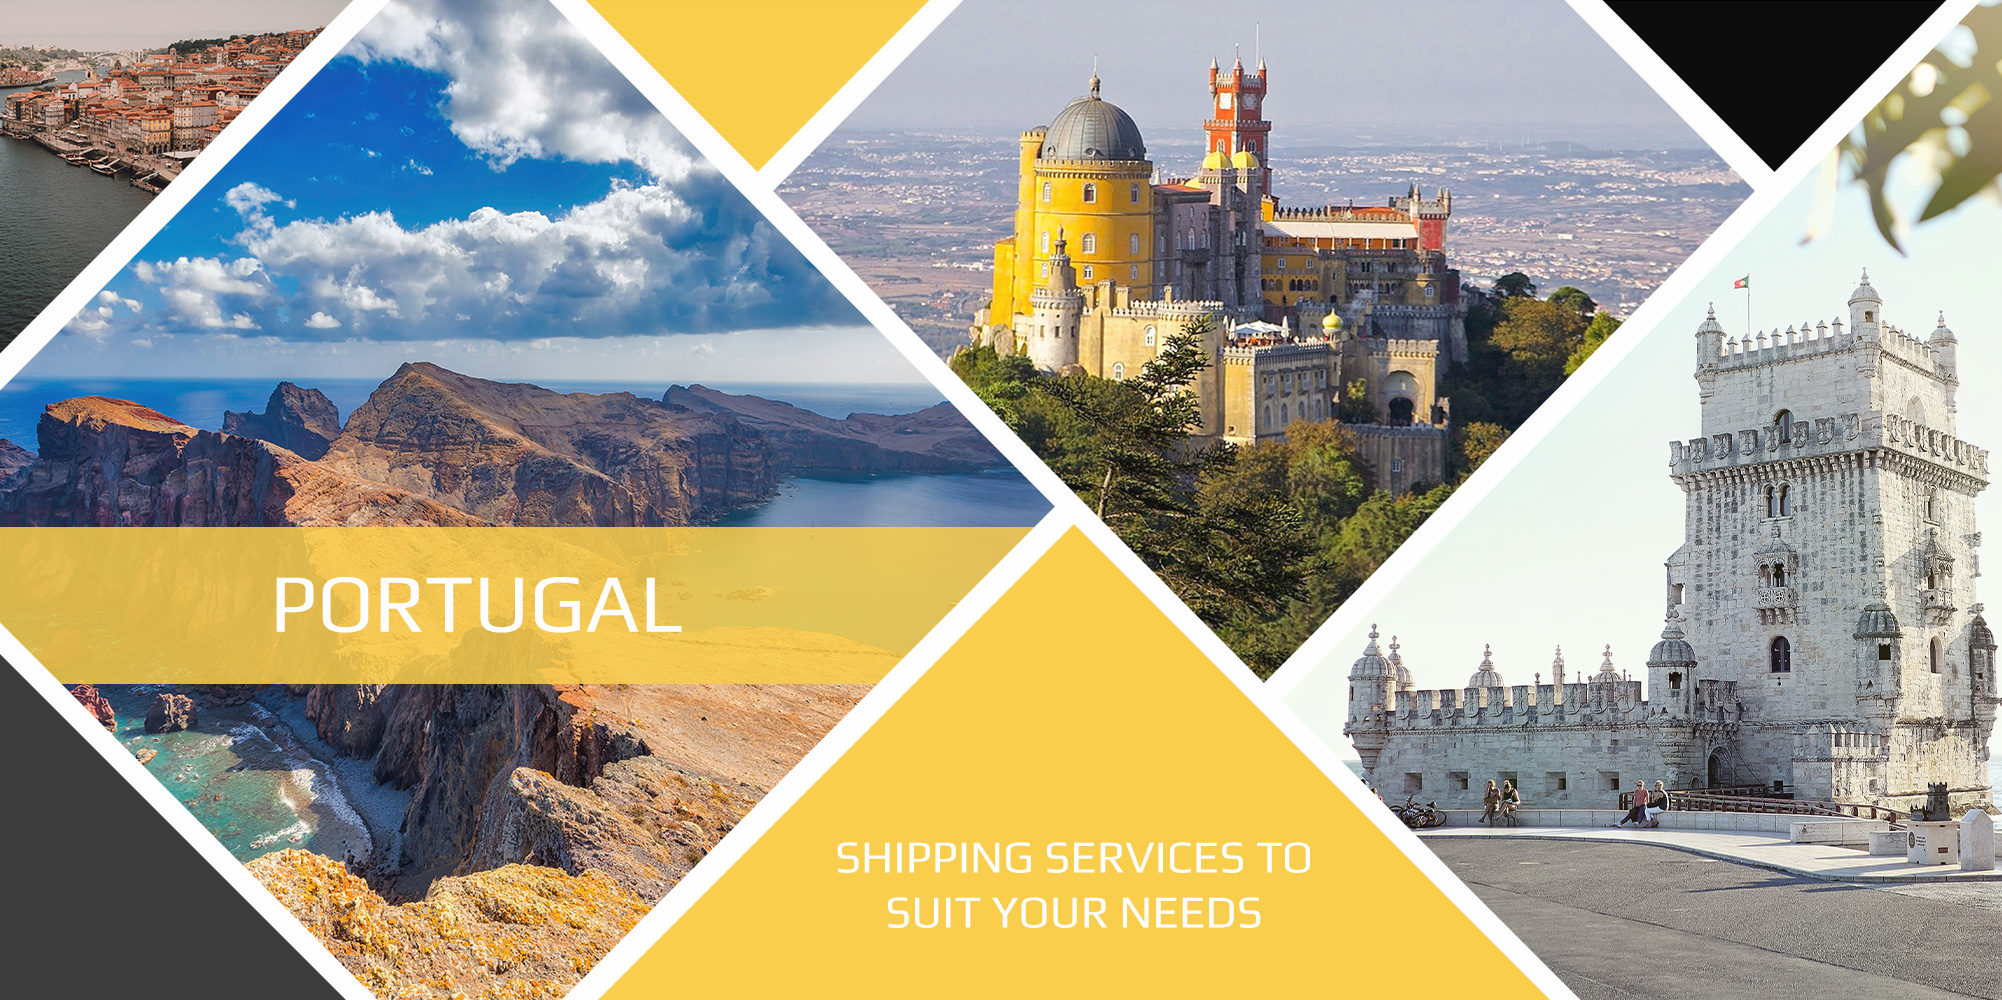 Portugal shipping and landmark collage